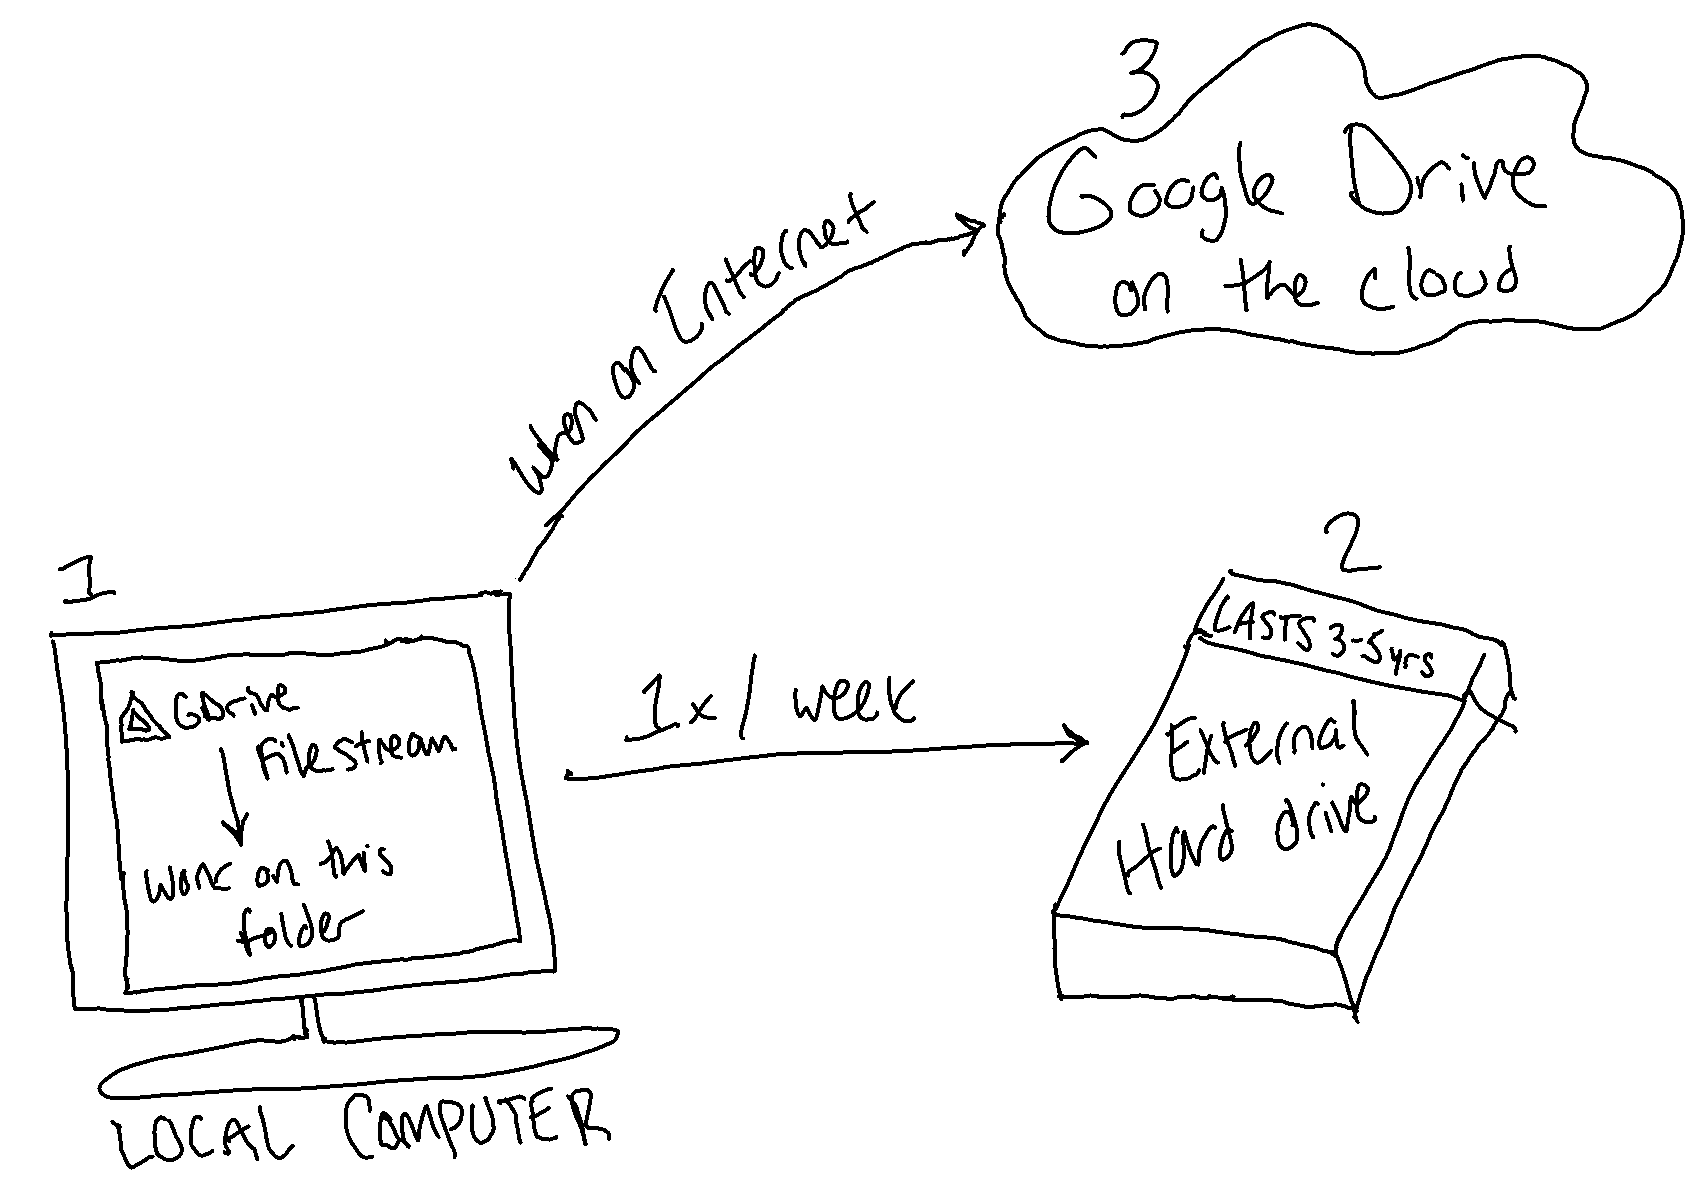 an image depicting the 3-2-1 rule using Google Drive filestream